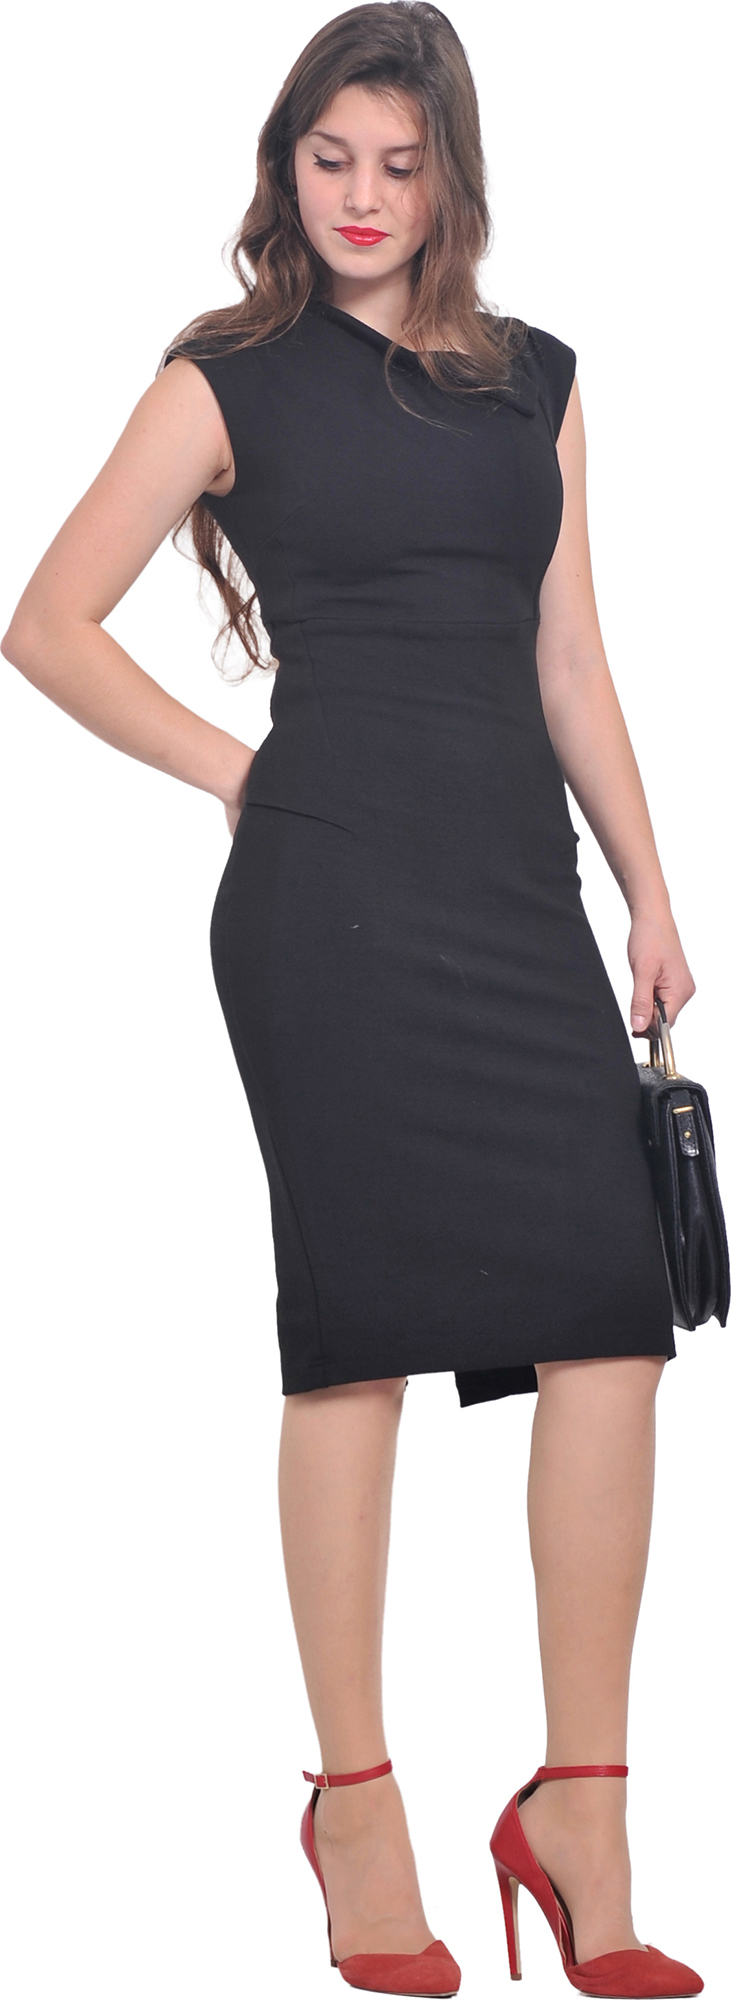 womens elegant business office wear to work office sheath pencil